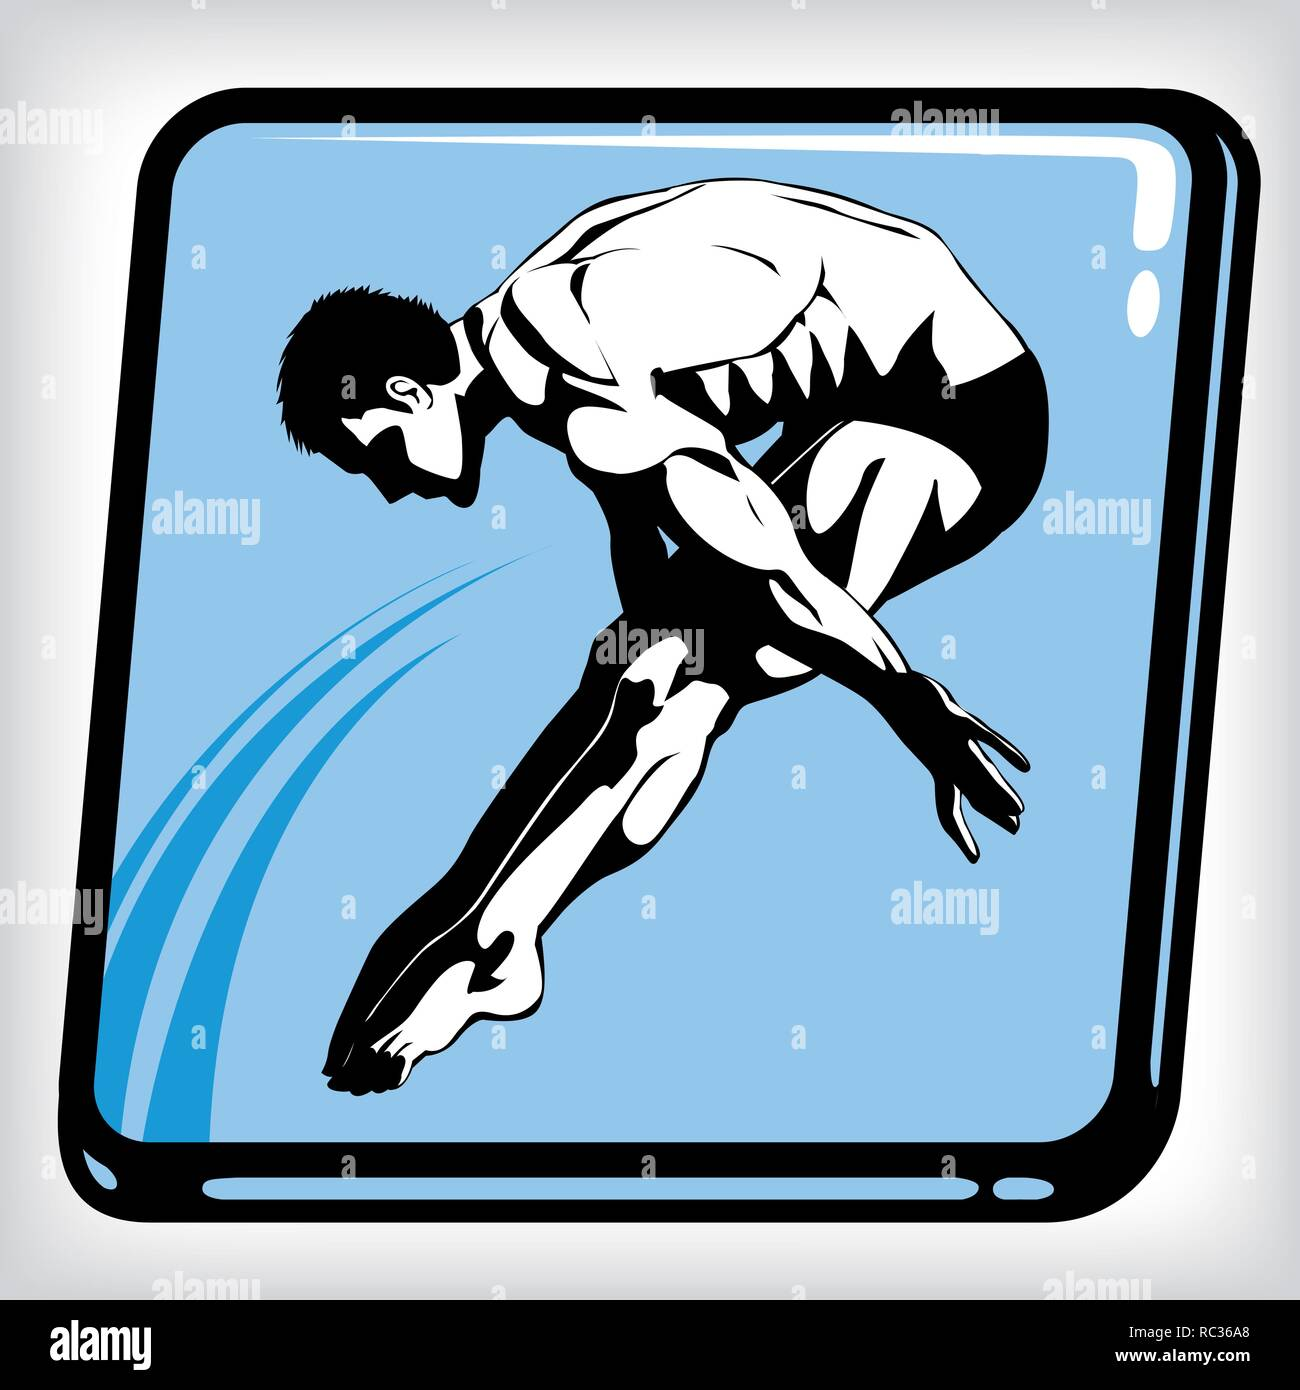 Dynamic Icon Of Man Diving Into Swimming Pool Stock Vector